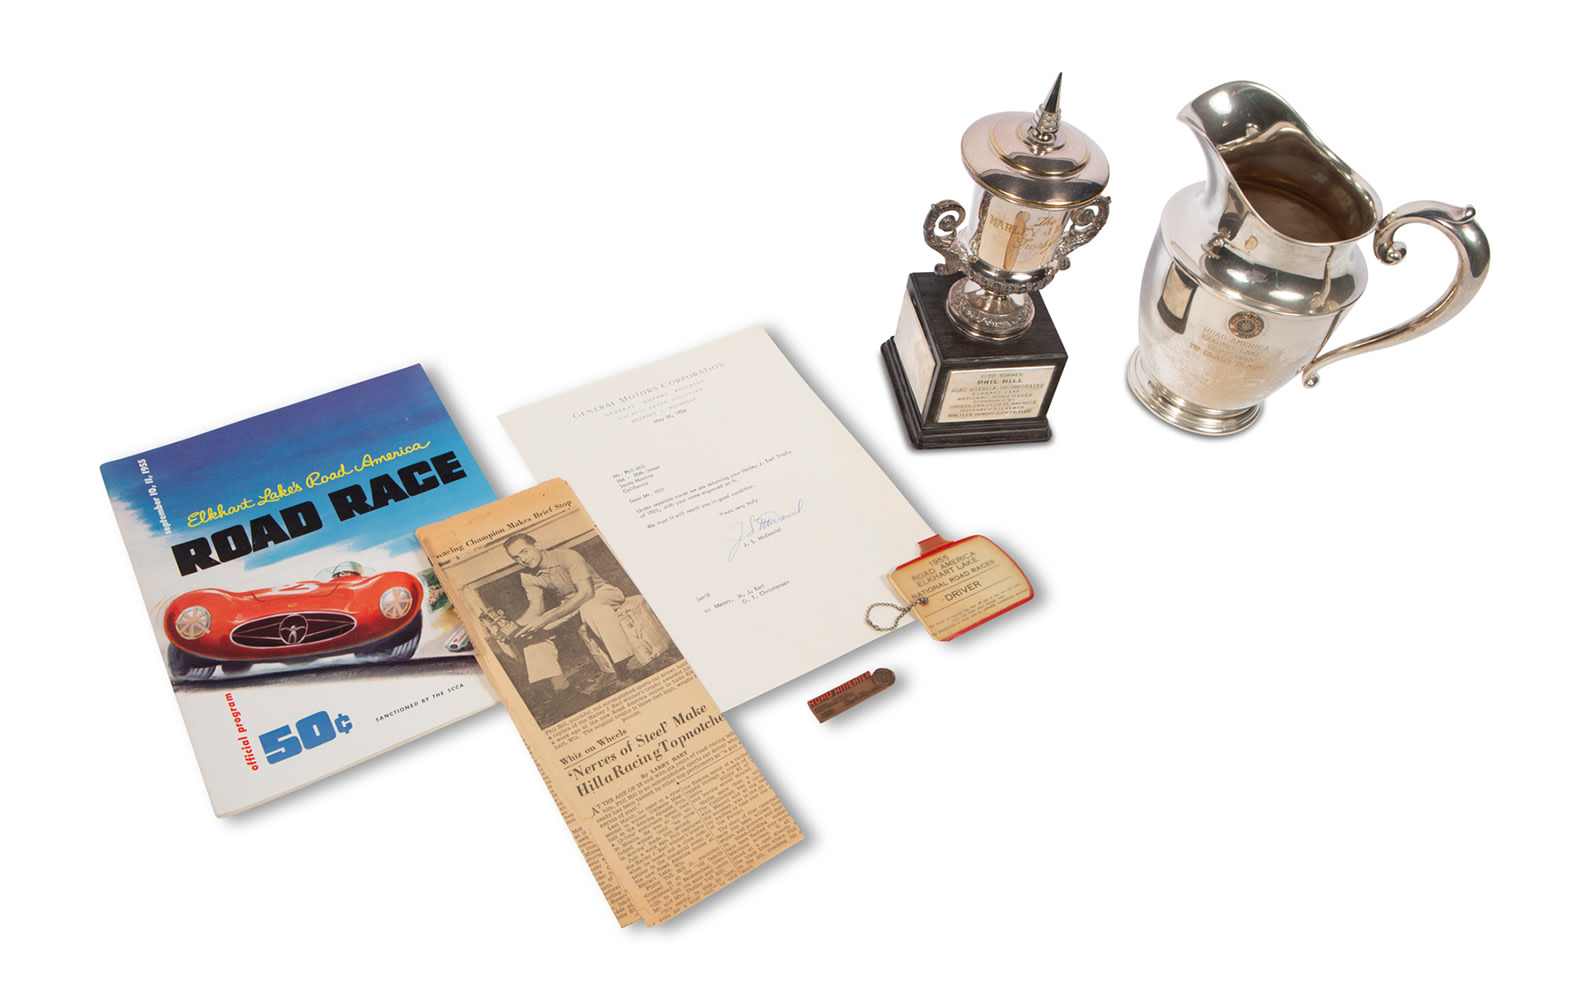 1955 Elkhart Lake's Road America Road Race Trophies, Driver Badge, Entrant Plaque, and Official Program